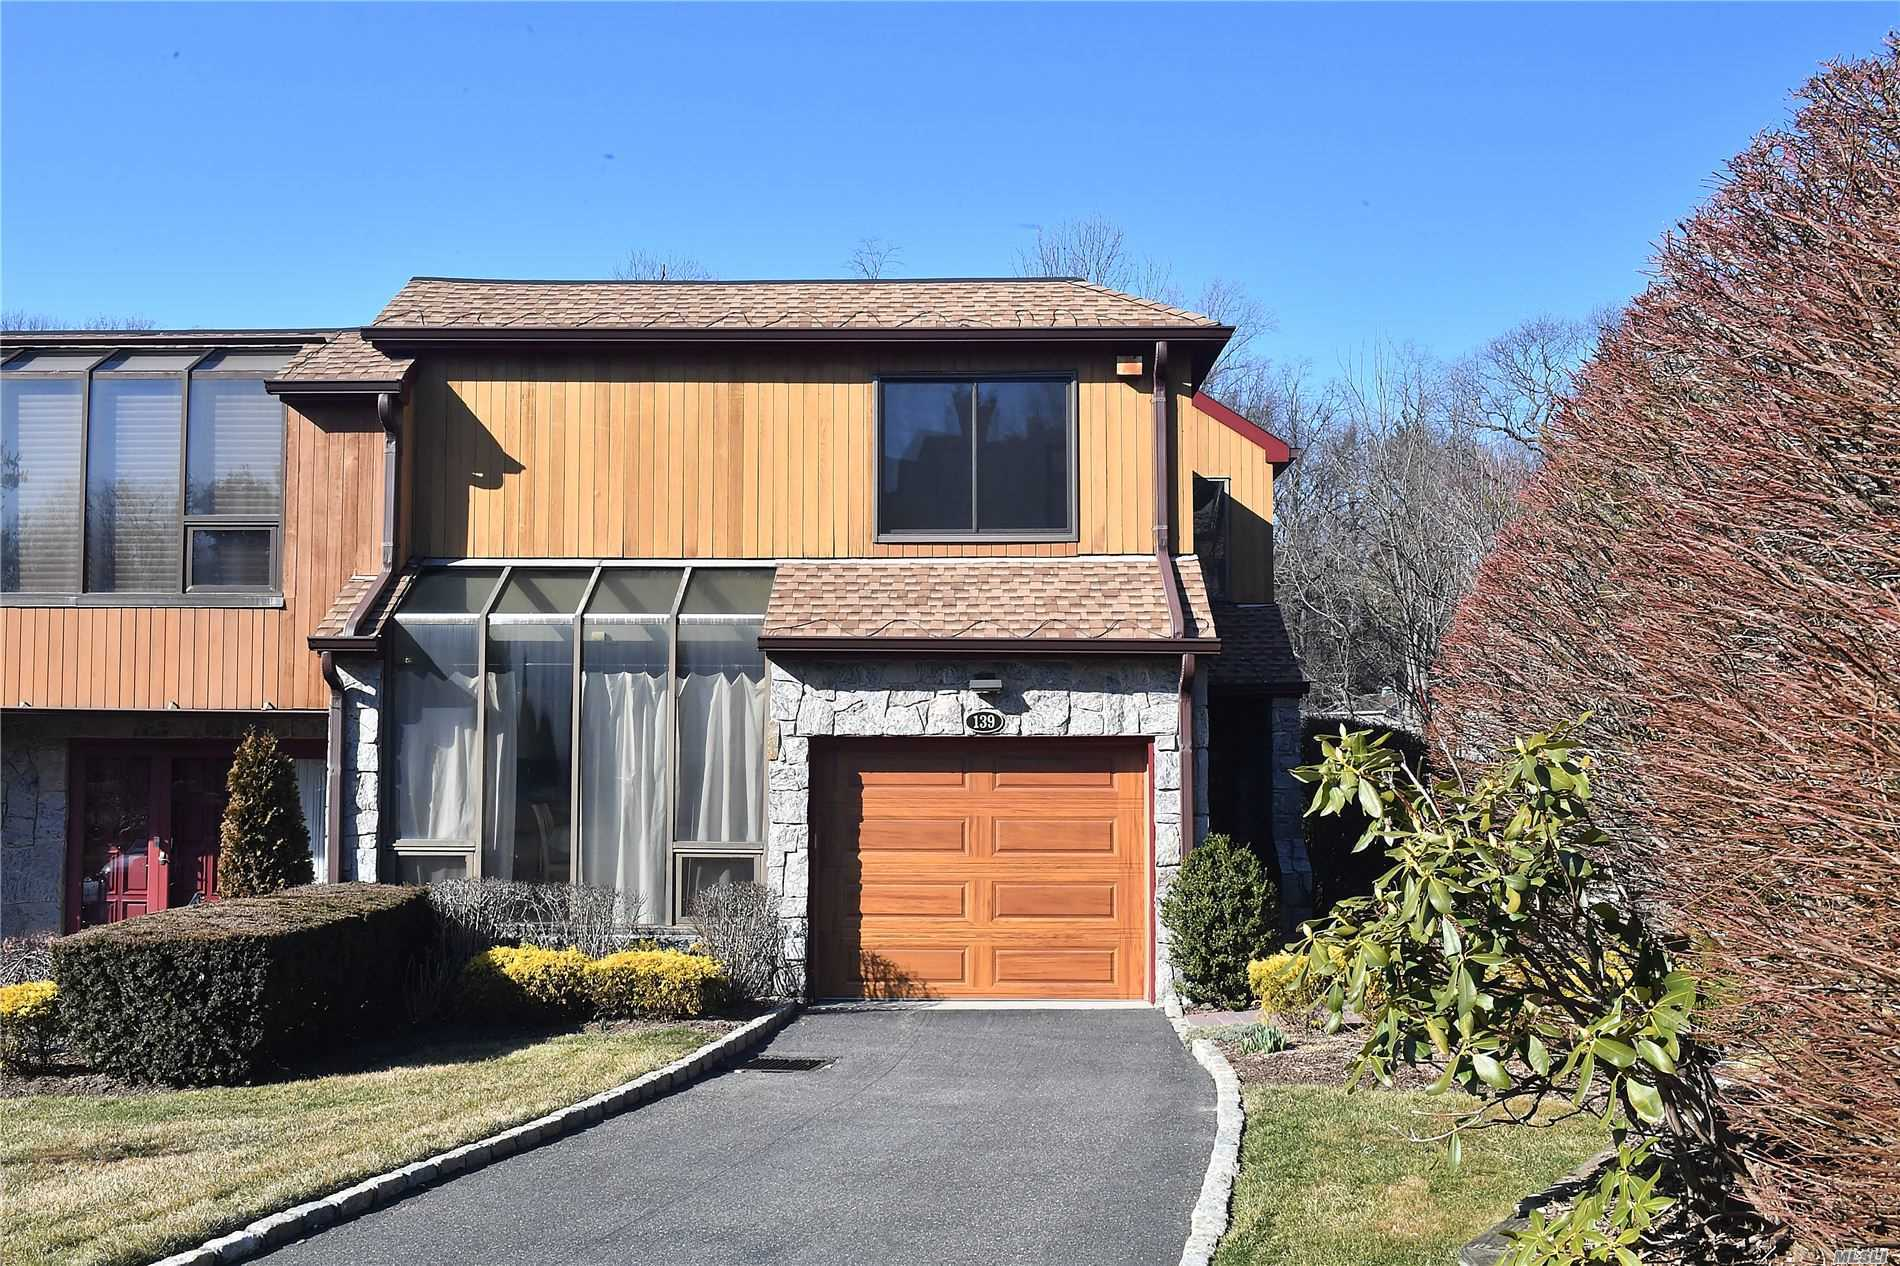 Property for sale at 139 The Cresent, Roslyn Heights NY 11577, Roslyn Heights,  New York 11577